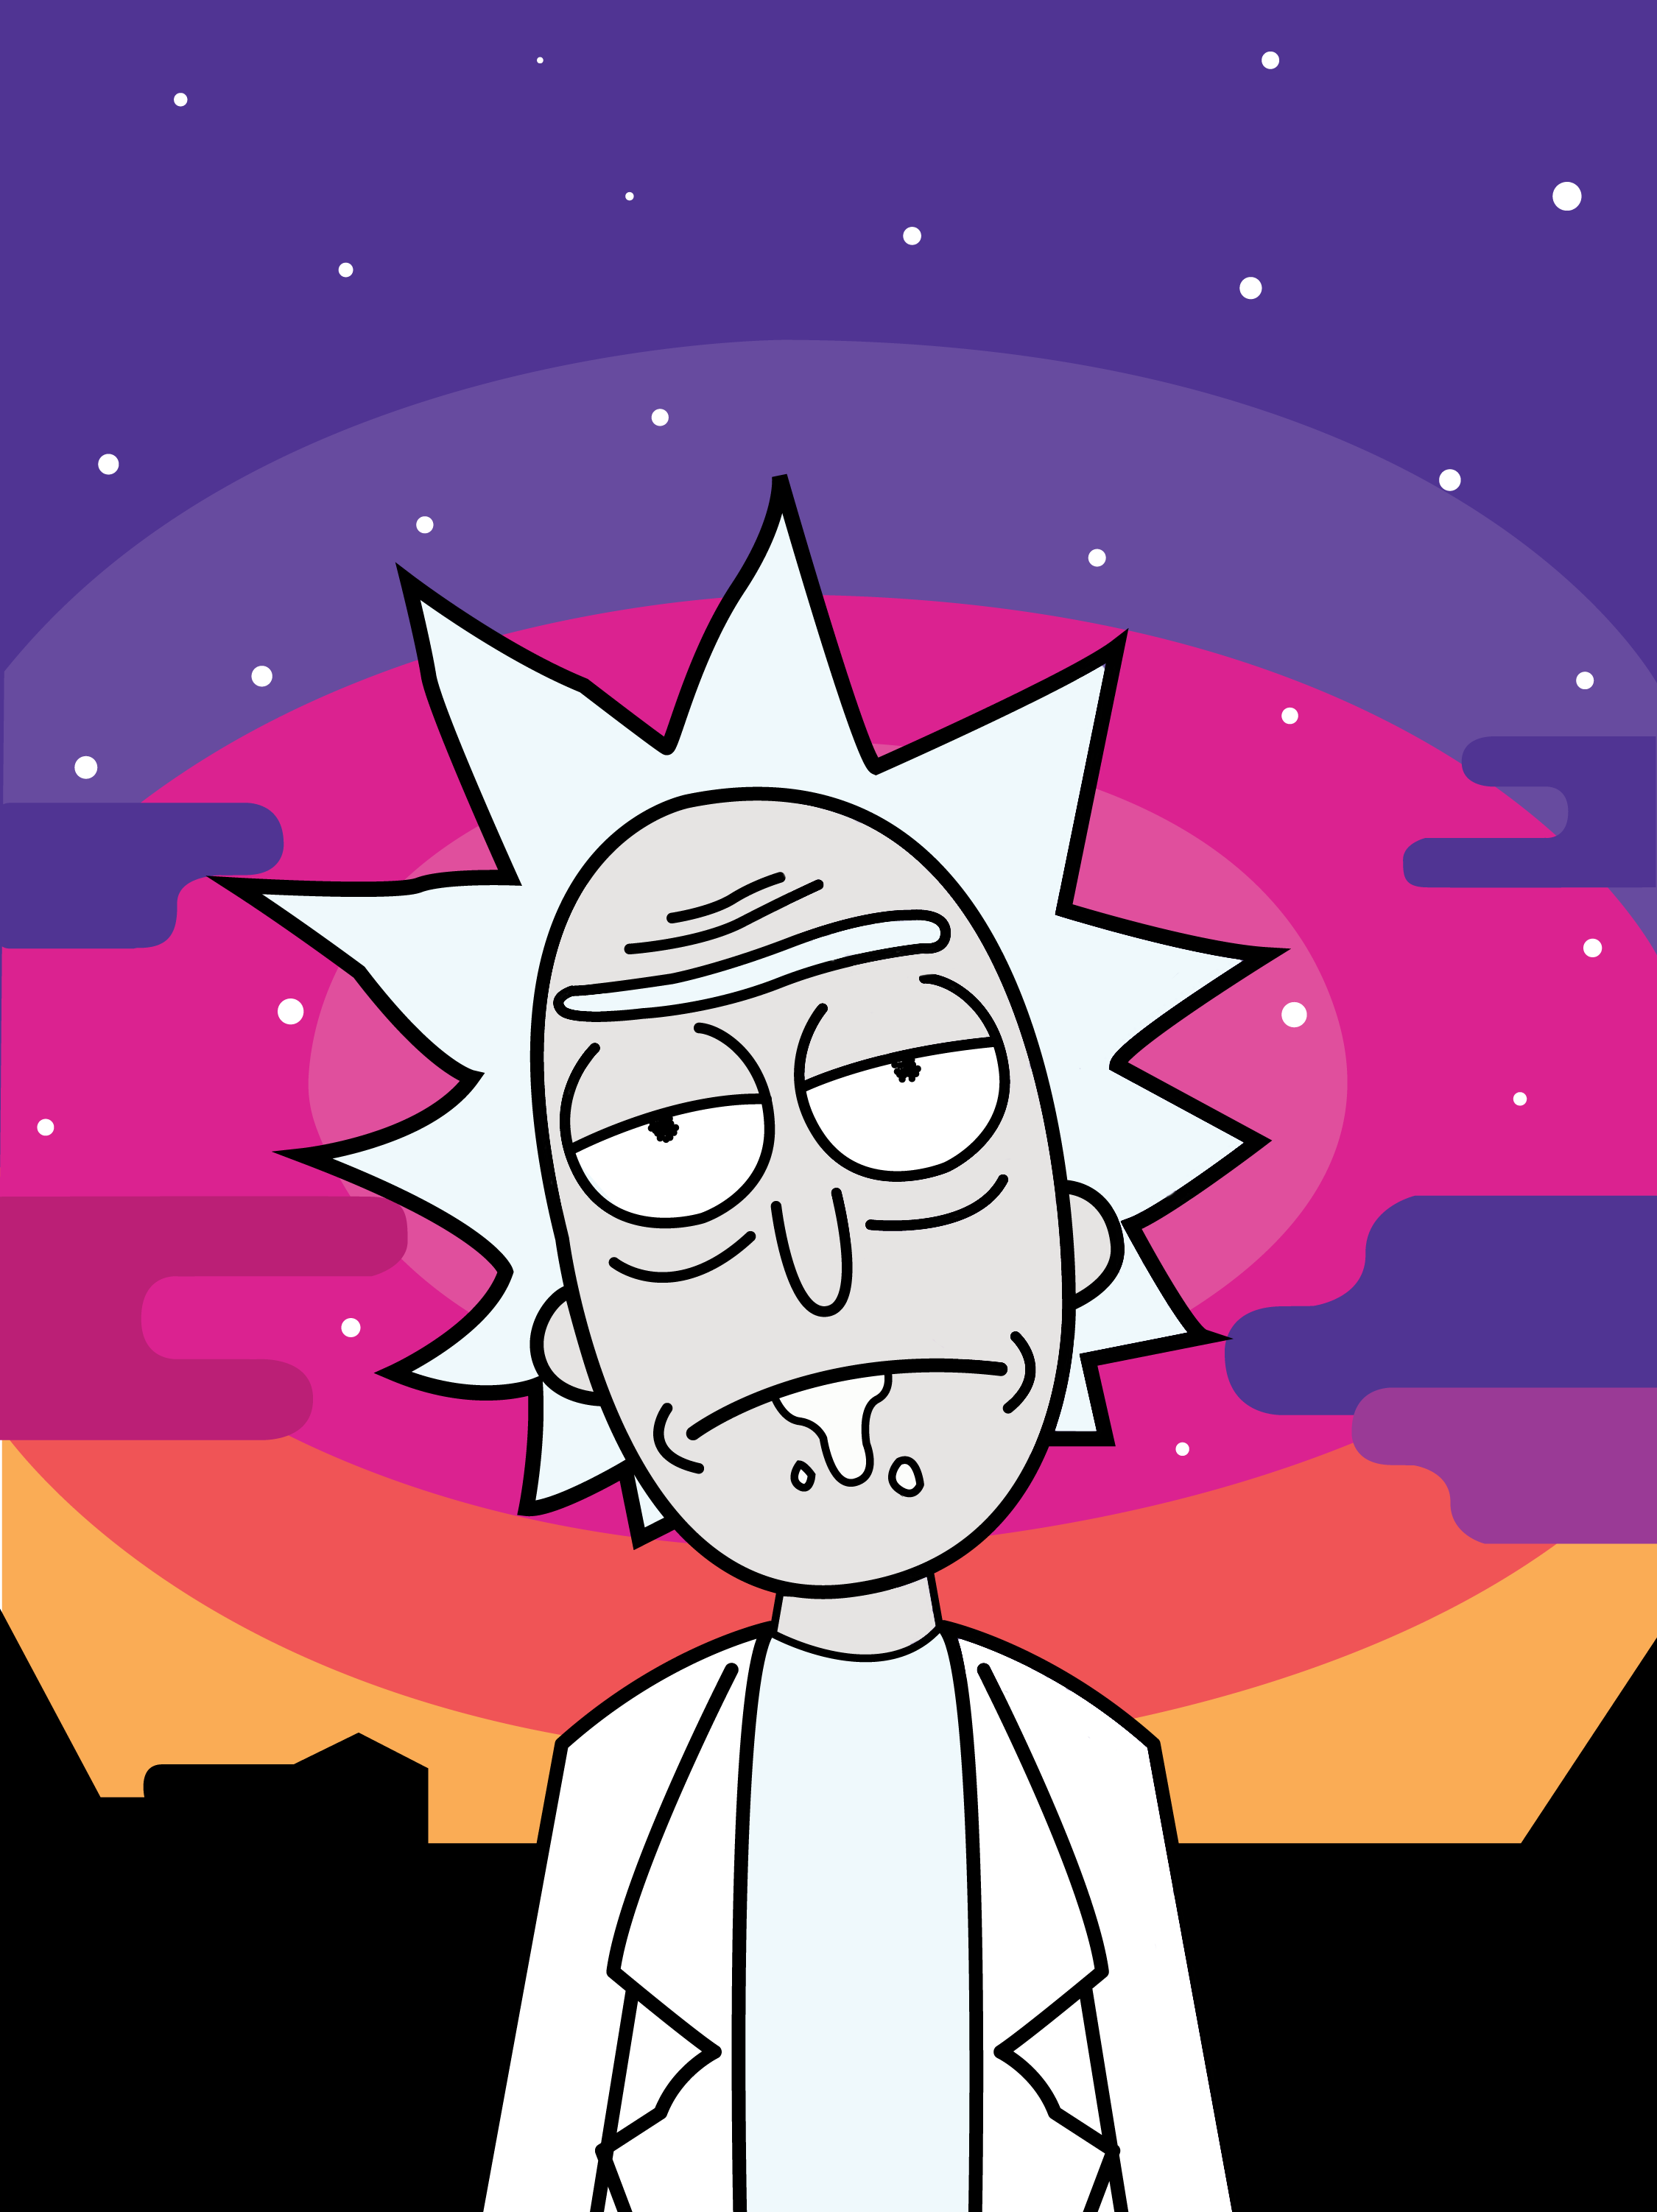 Rick Phone Wallpaper 1080x1920 Papel de parede animado